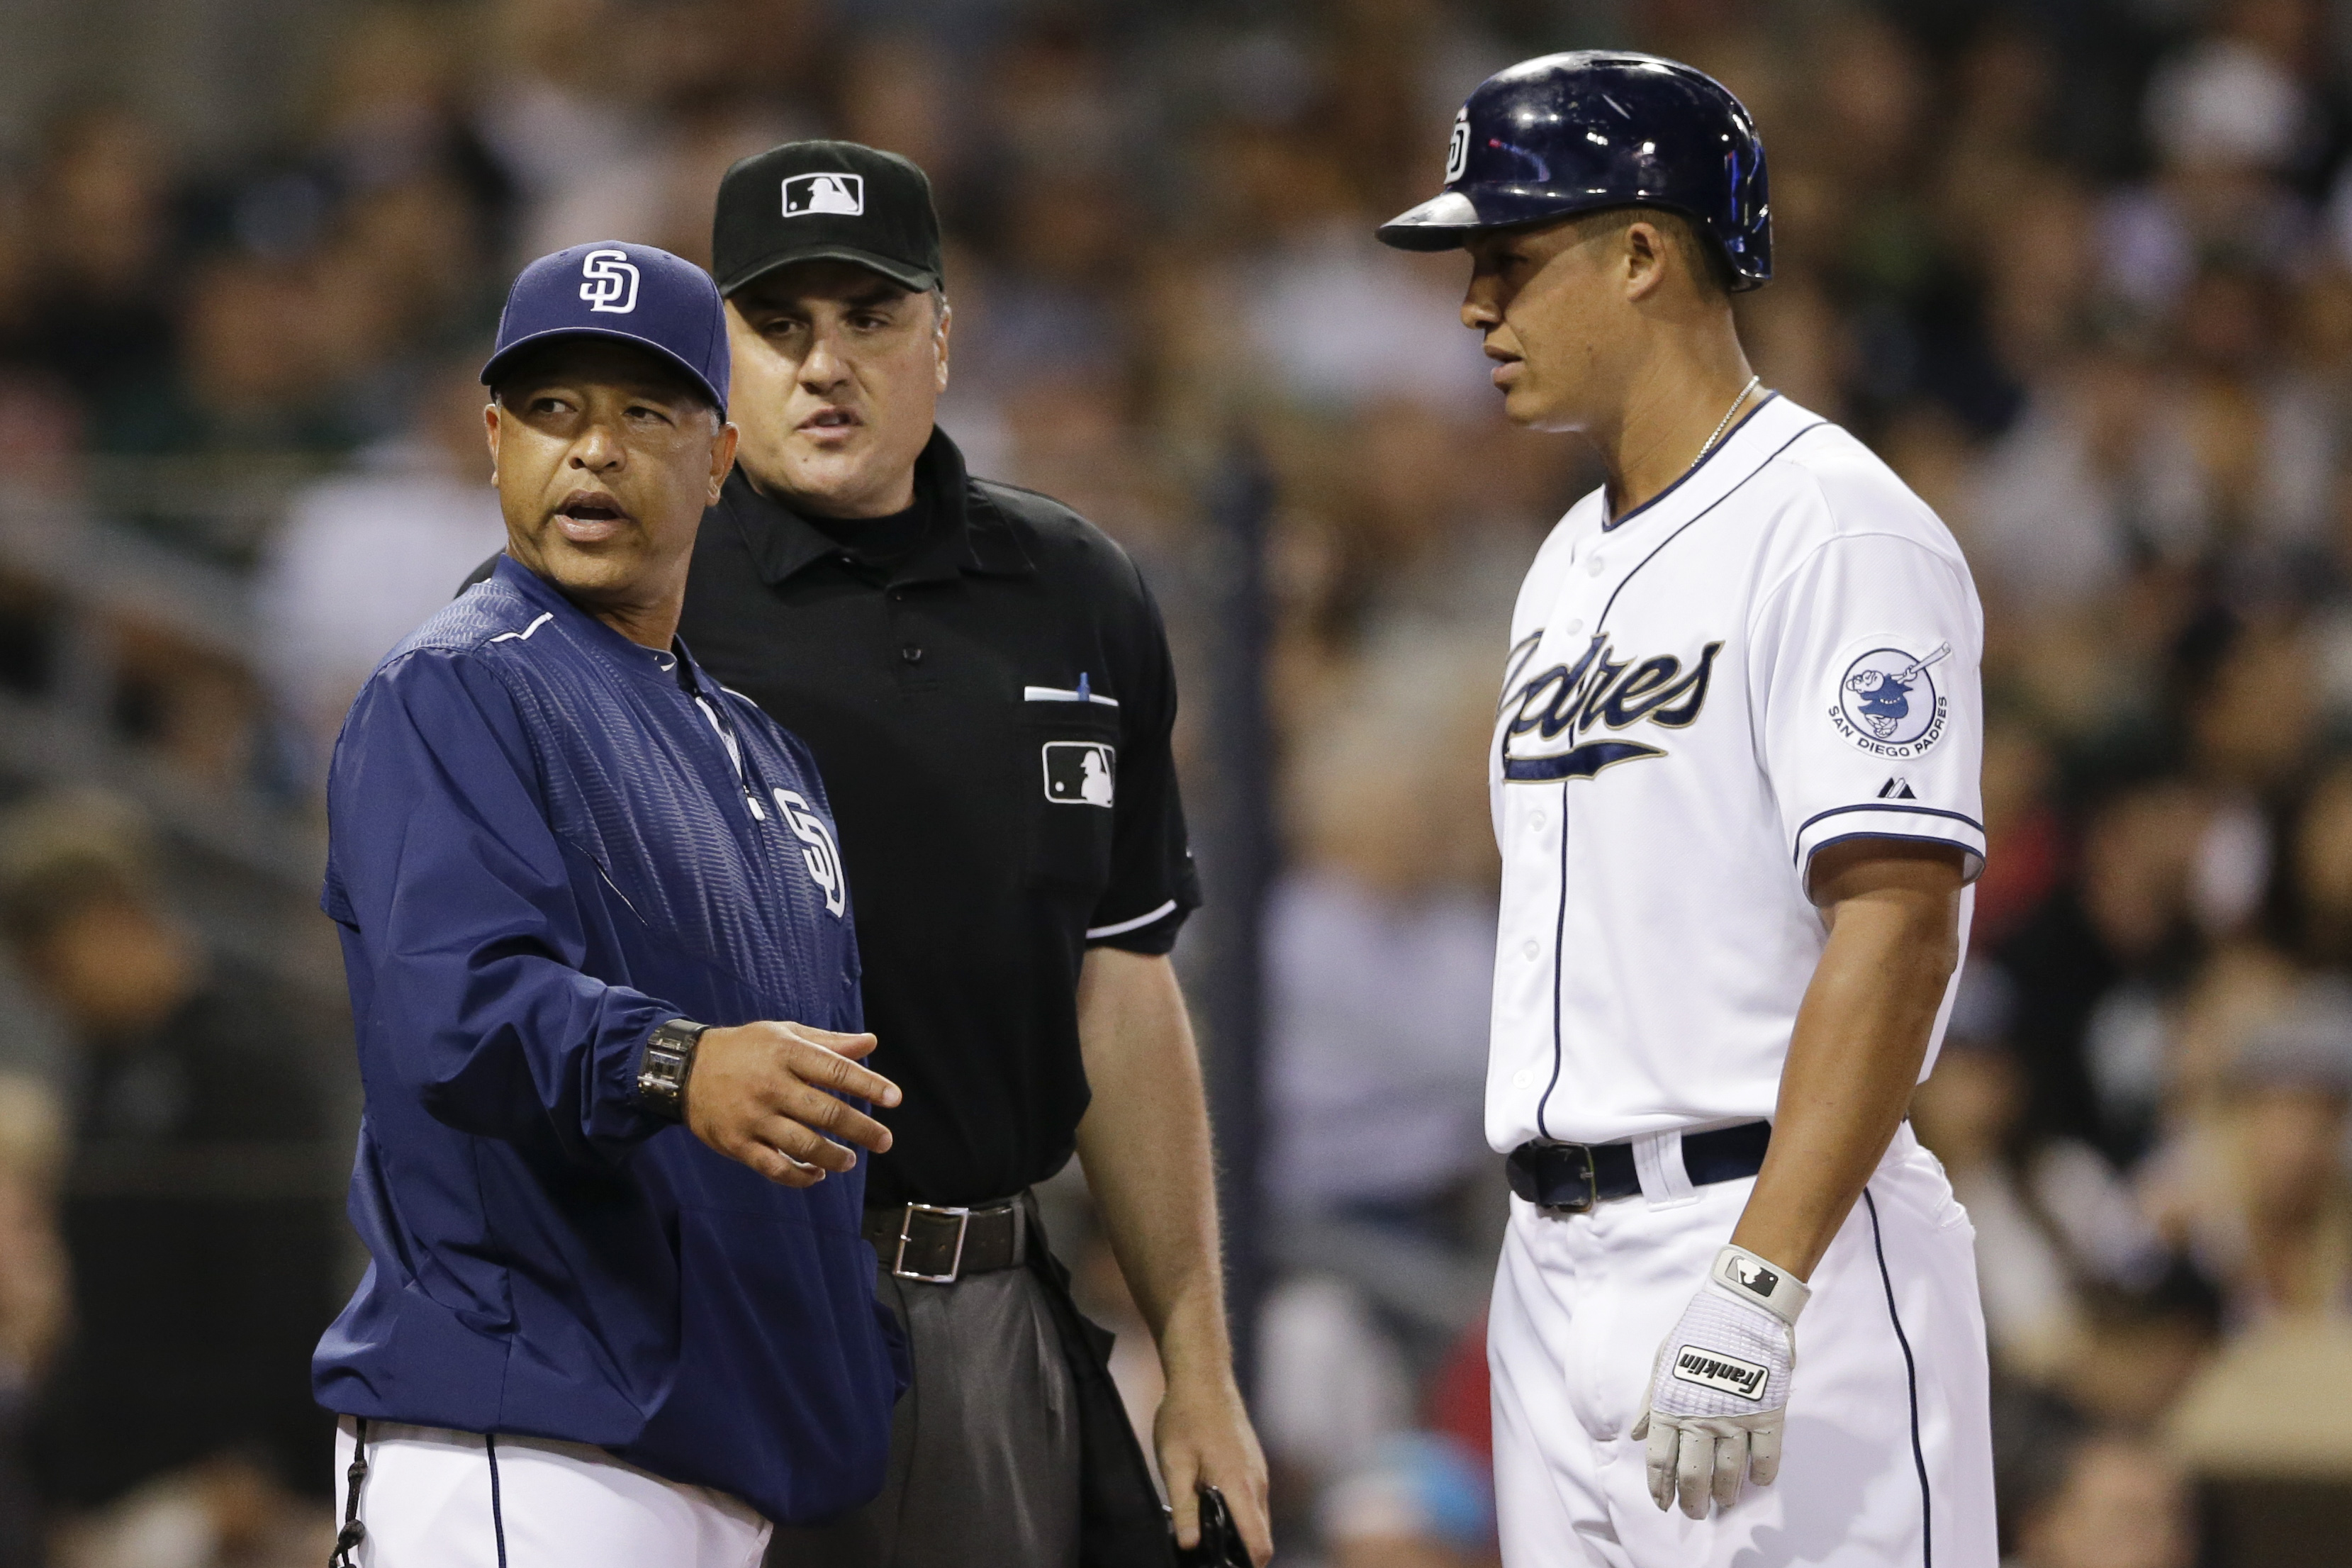 San Diego Padres acting manager Dave Roberts, left, discusses a play with umpire Mike DiMuro, center, as San Diego Padres' Will Venable looks on while playing the Oakland Athletics during the fourth inning of a baseball game Monday, June 15, 2015, in San